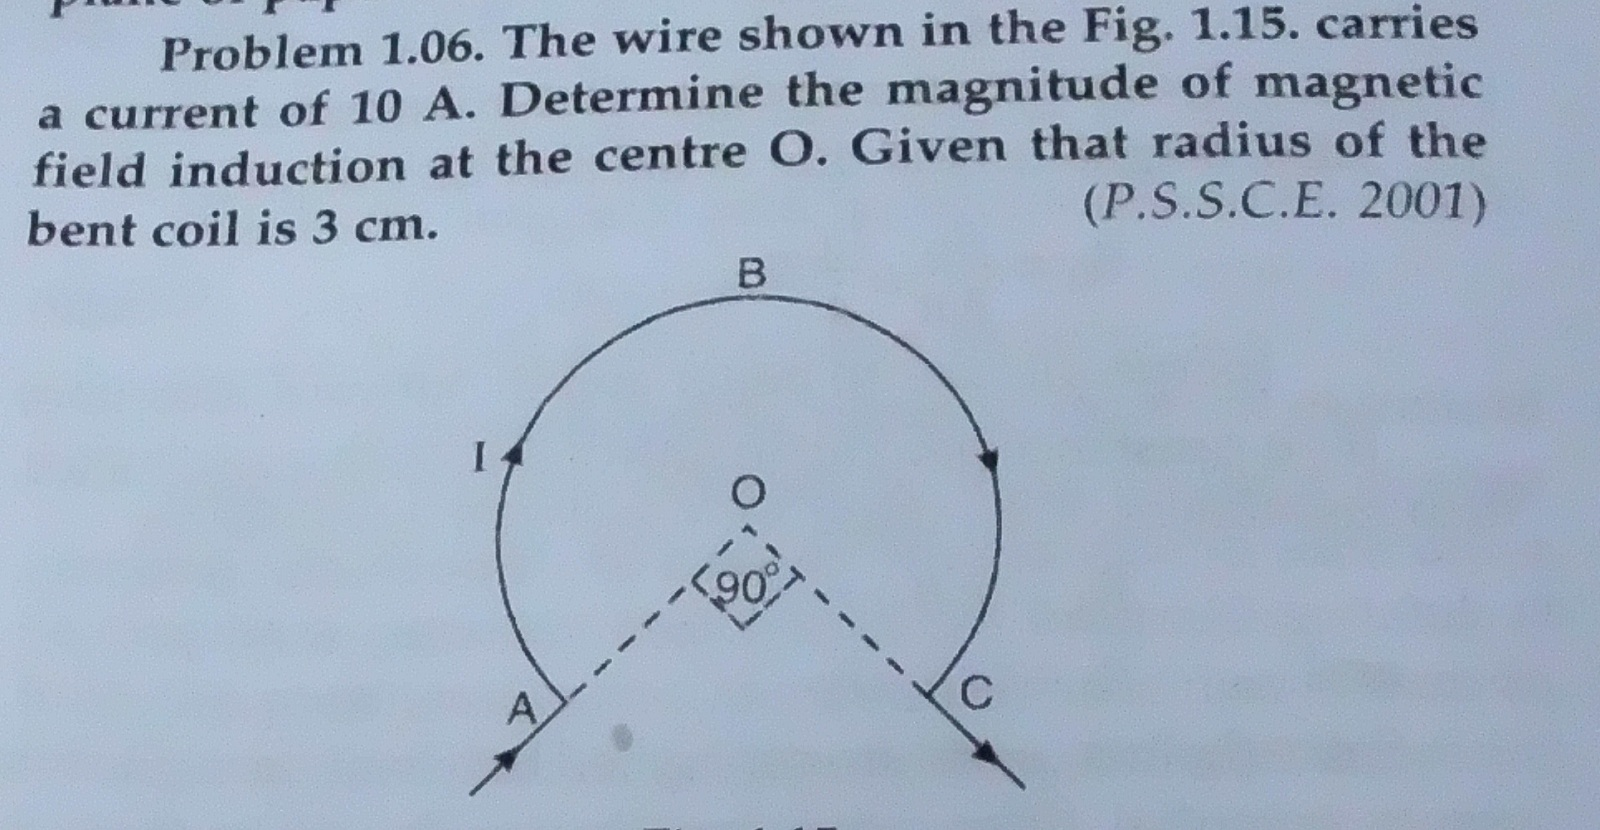 The wire shown in the Fig. 1.15. carries a current